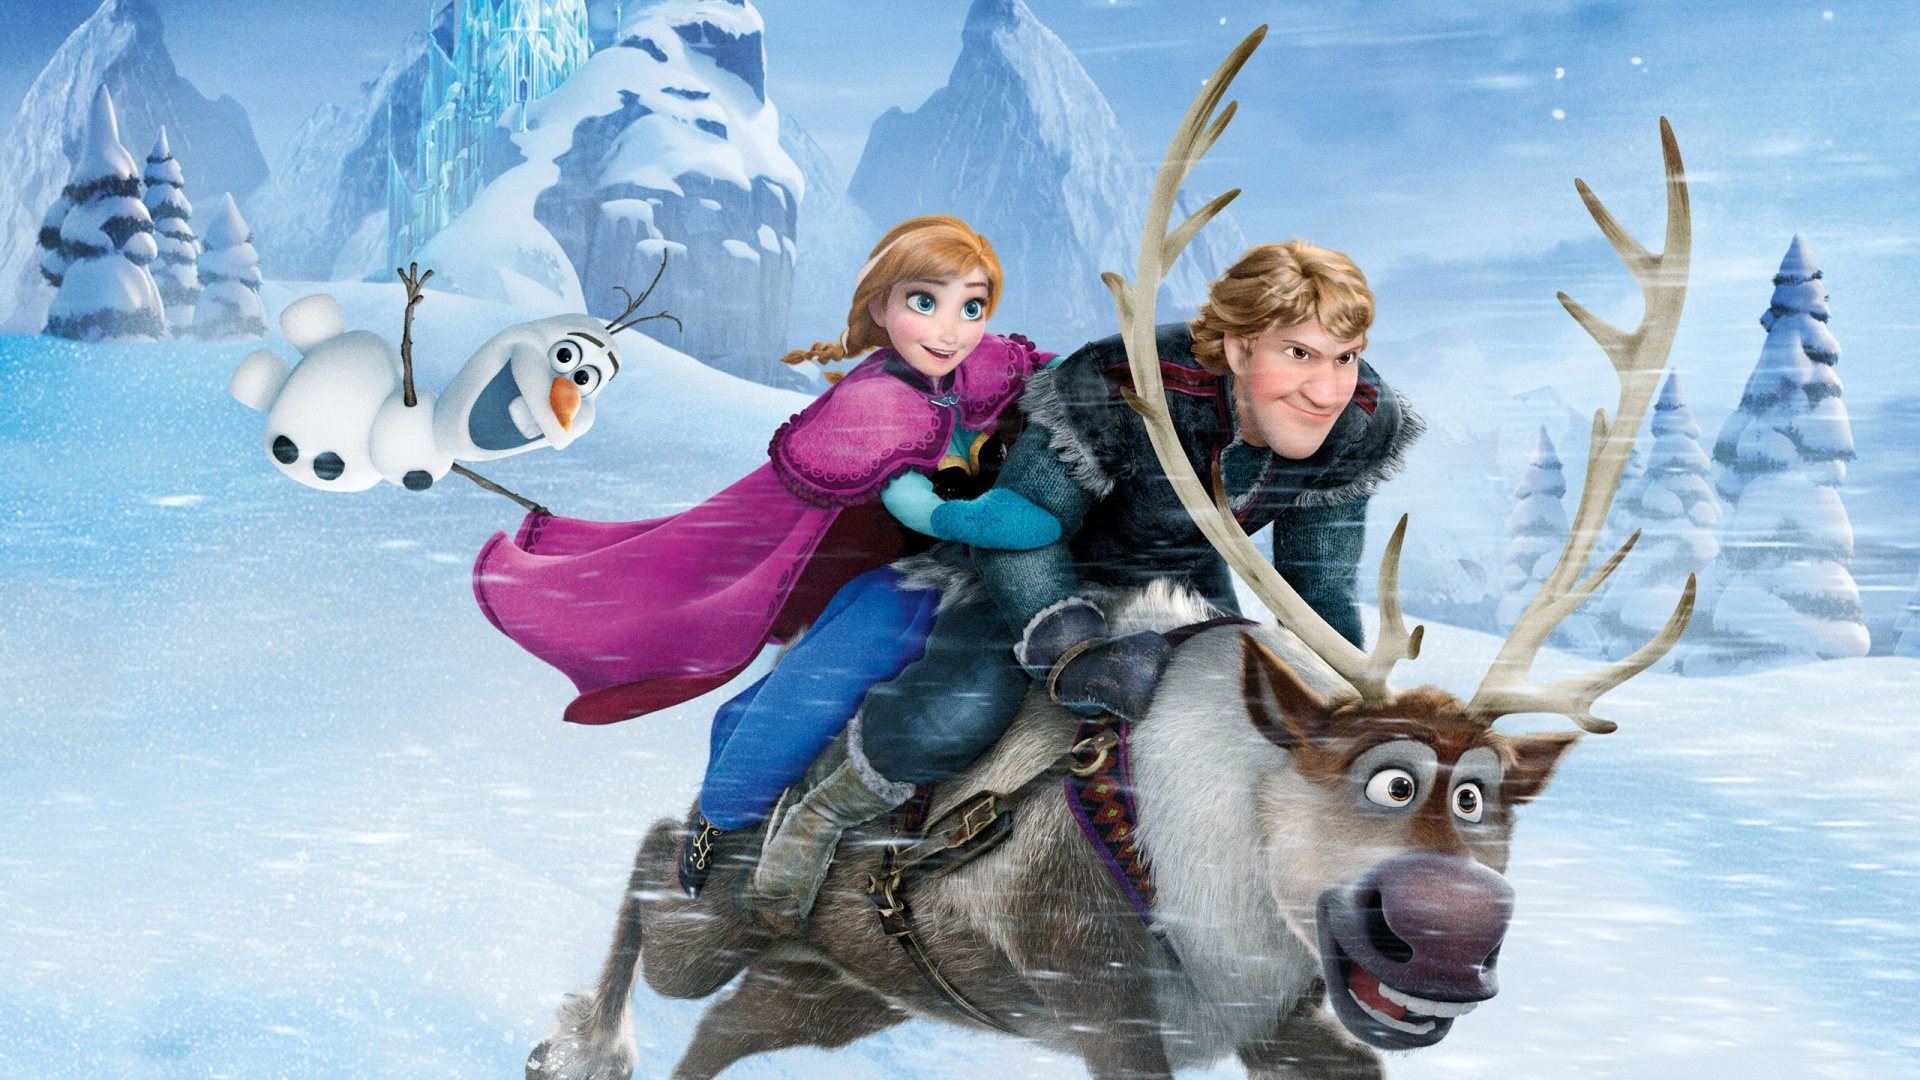 Frozen Movie Scene for Widescreen: 2560x1600 (compatible with any